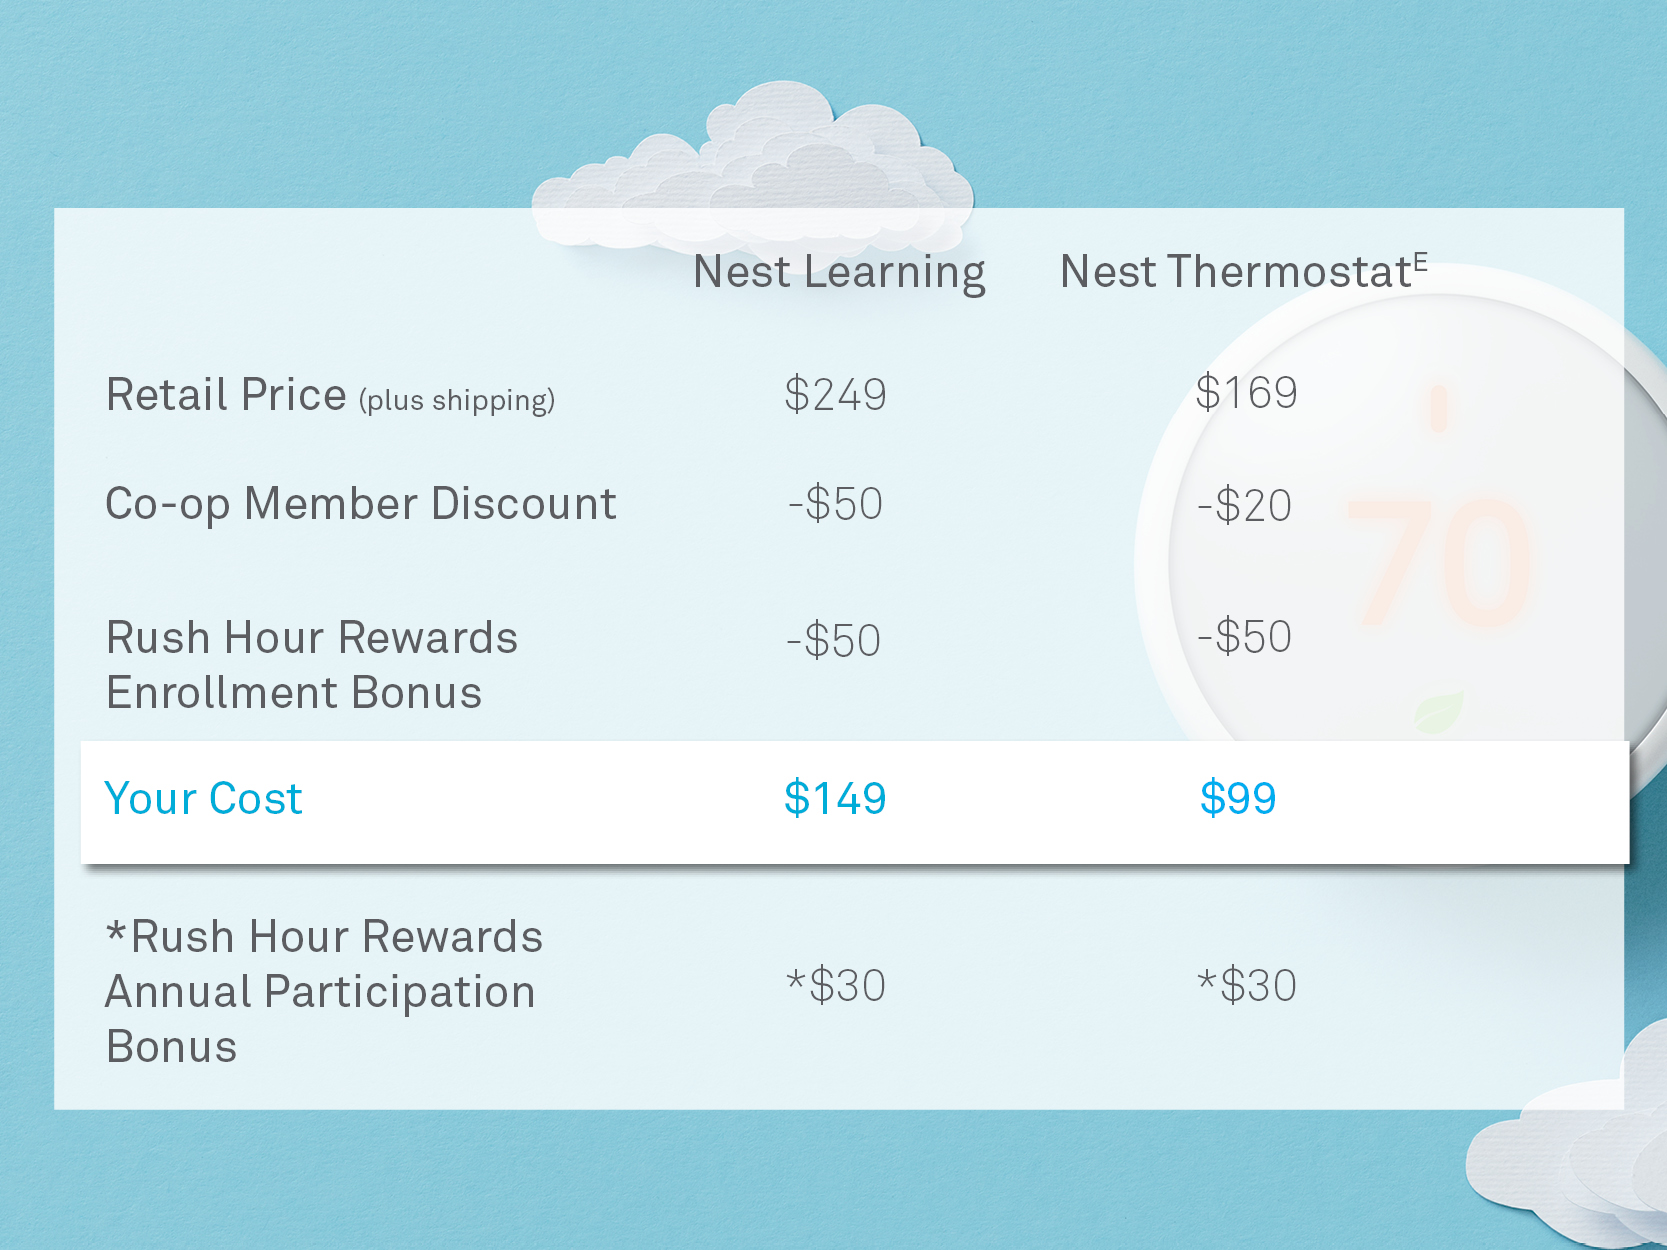 nest thermostat prices